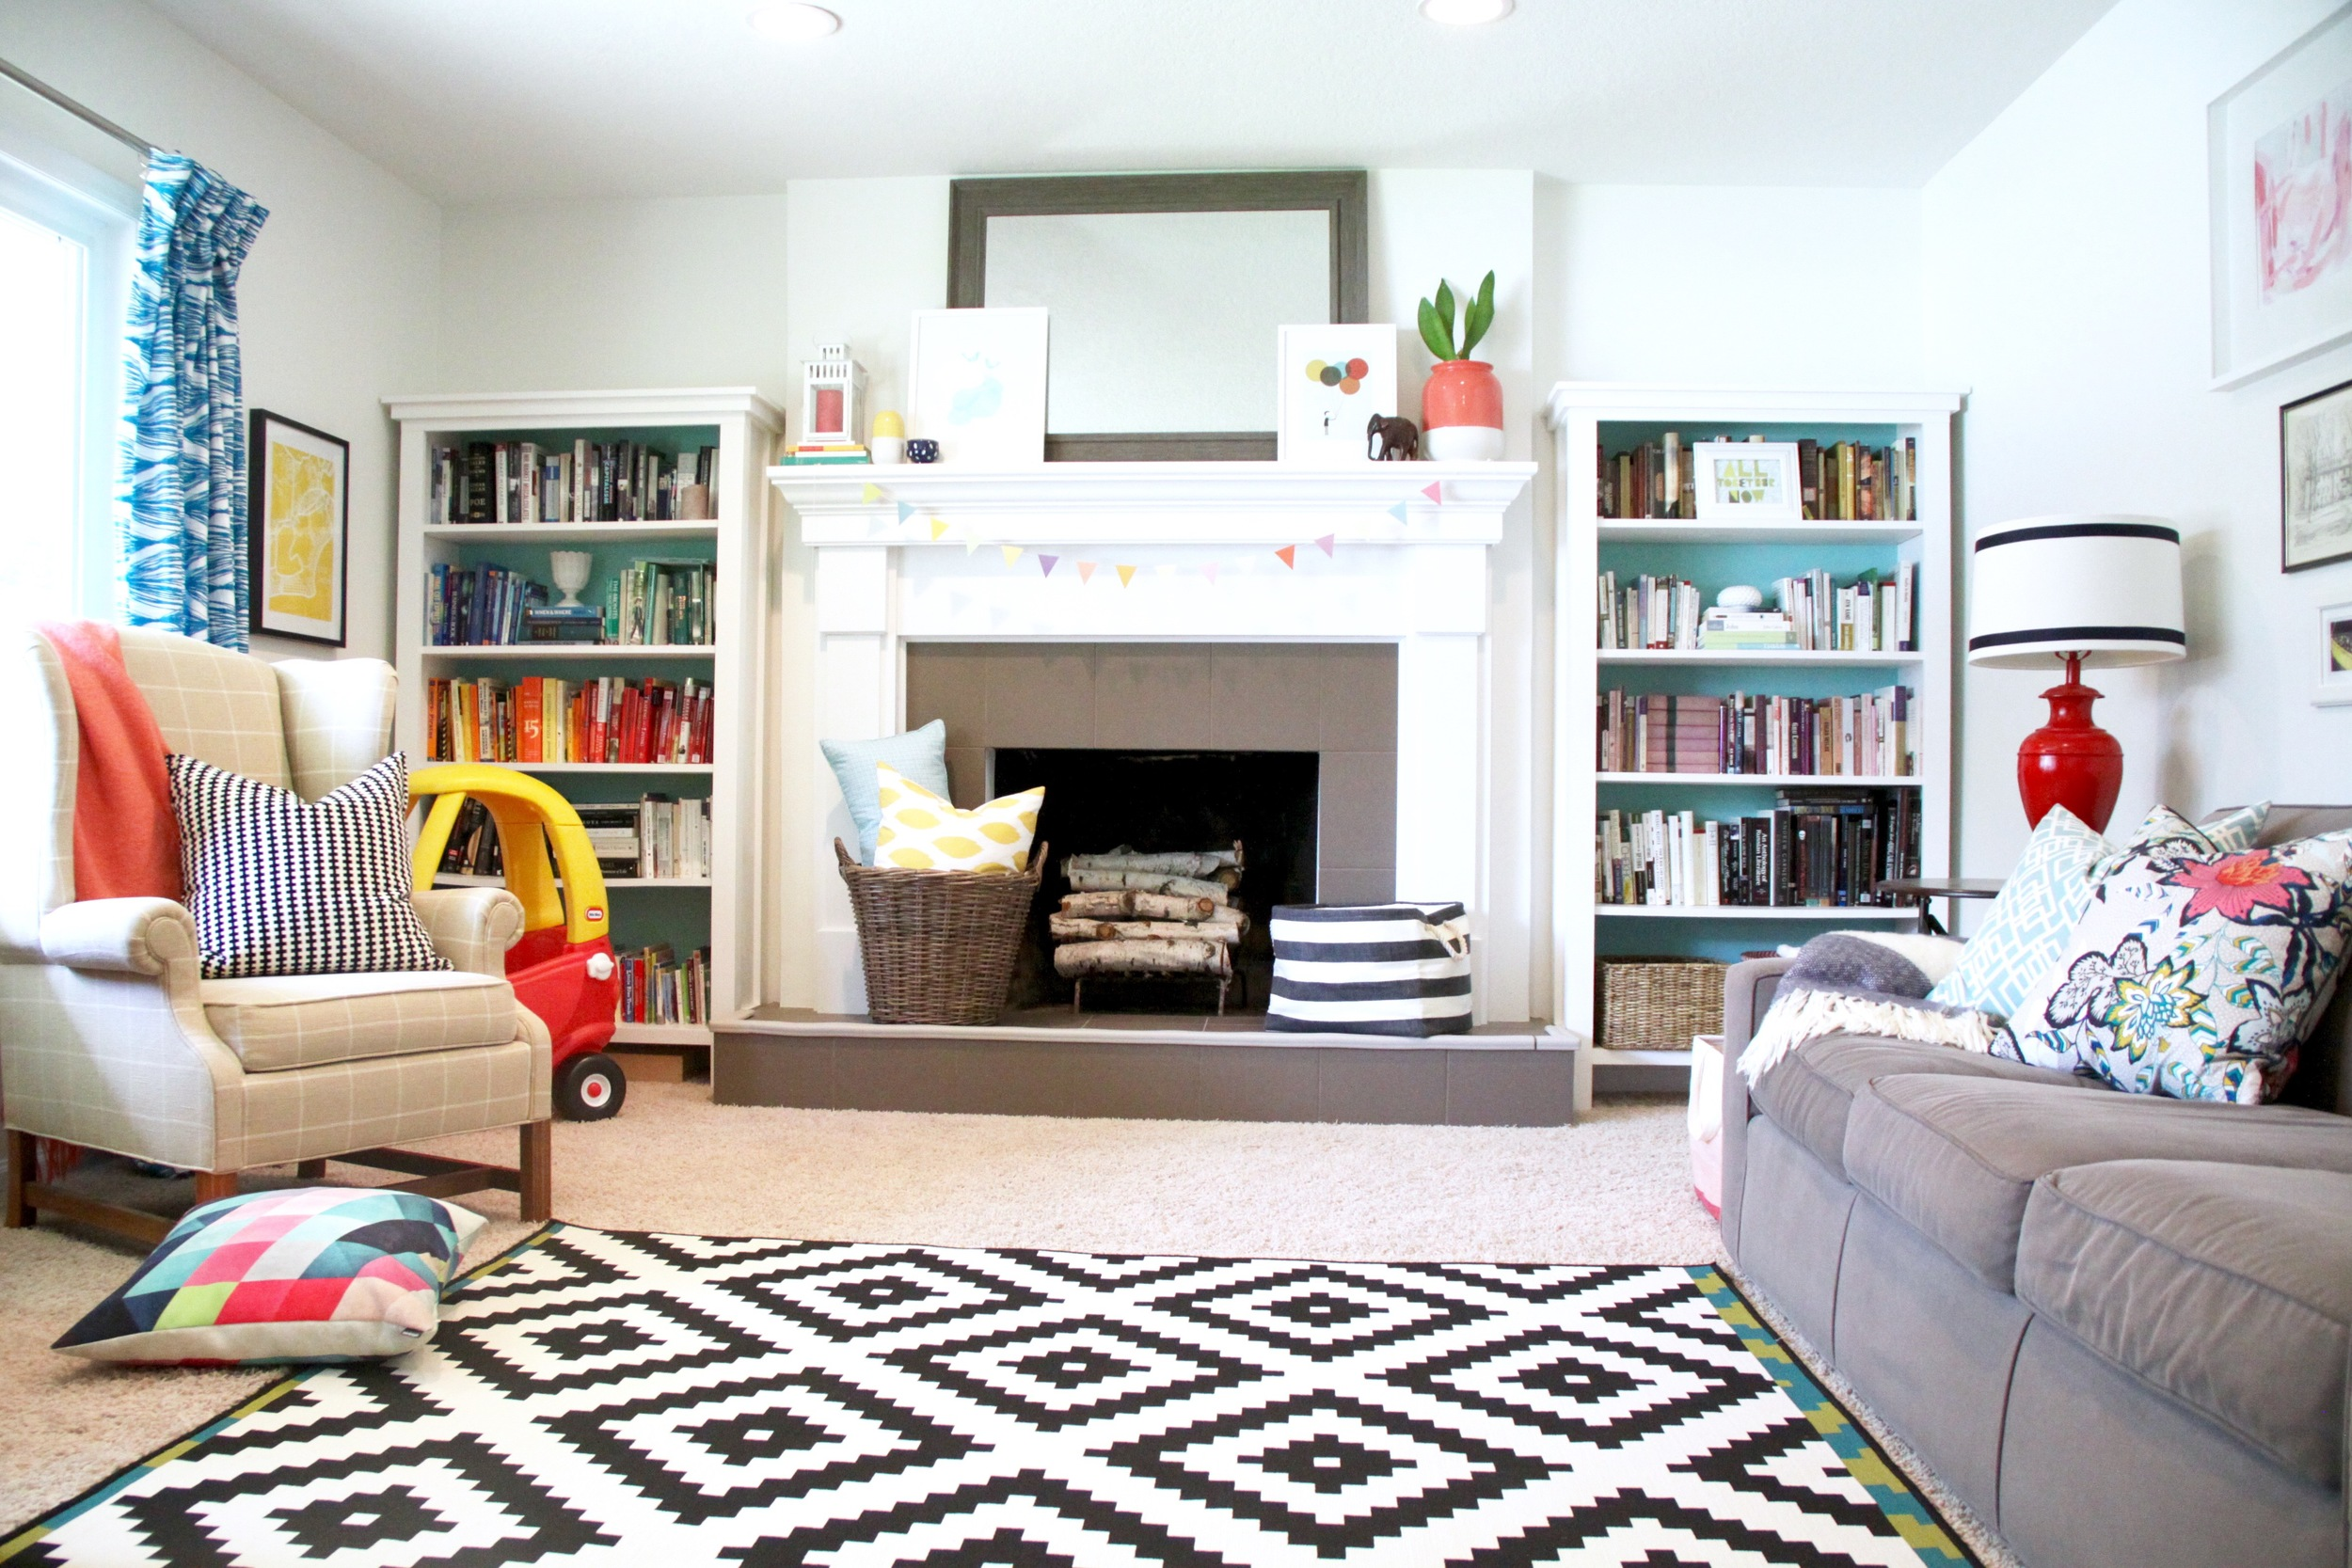 Living Room with White Walls and Graphic Prints